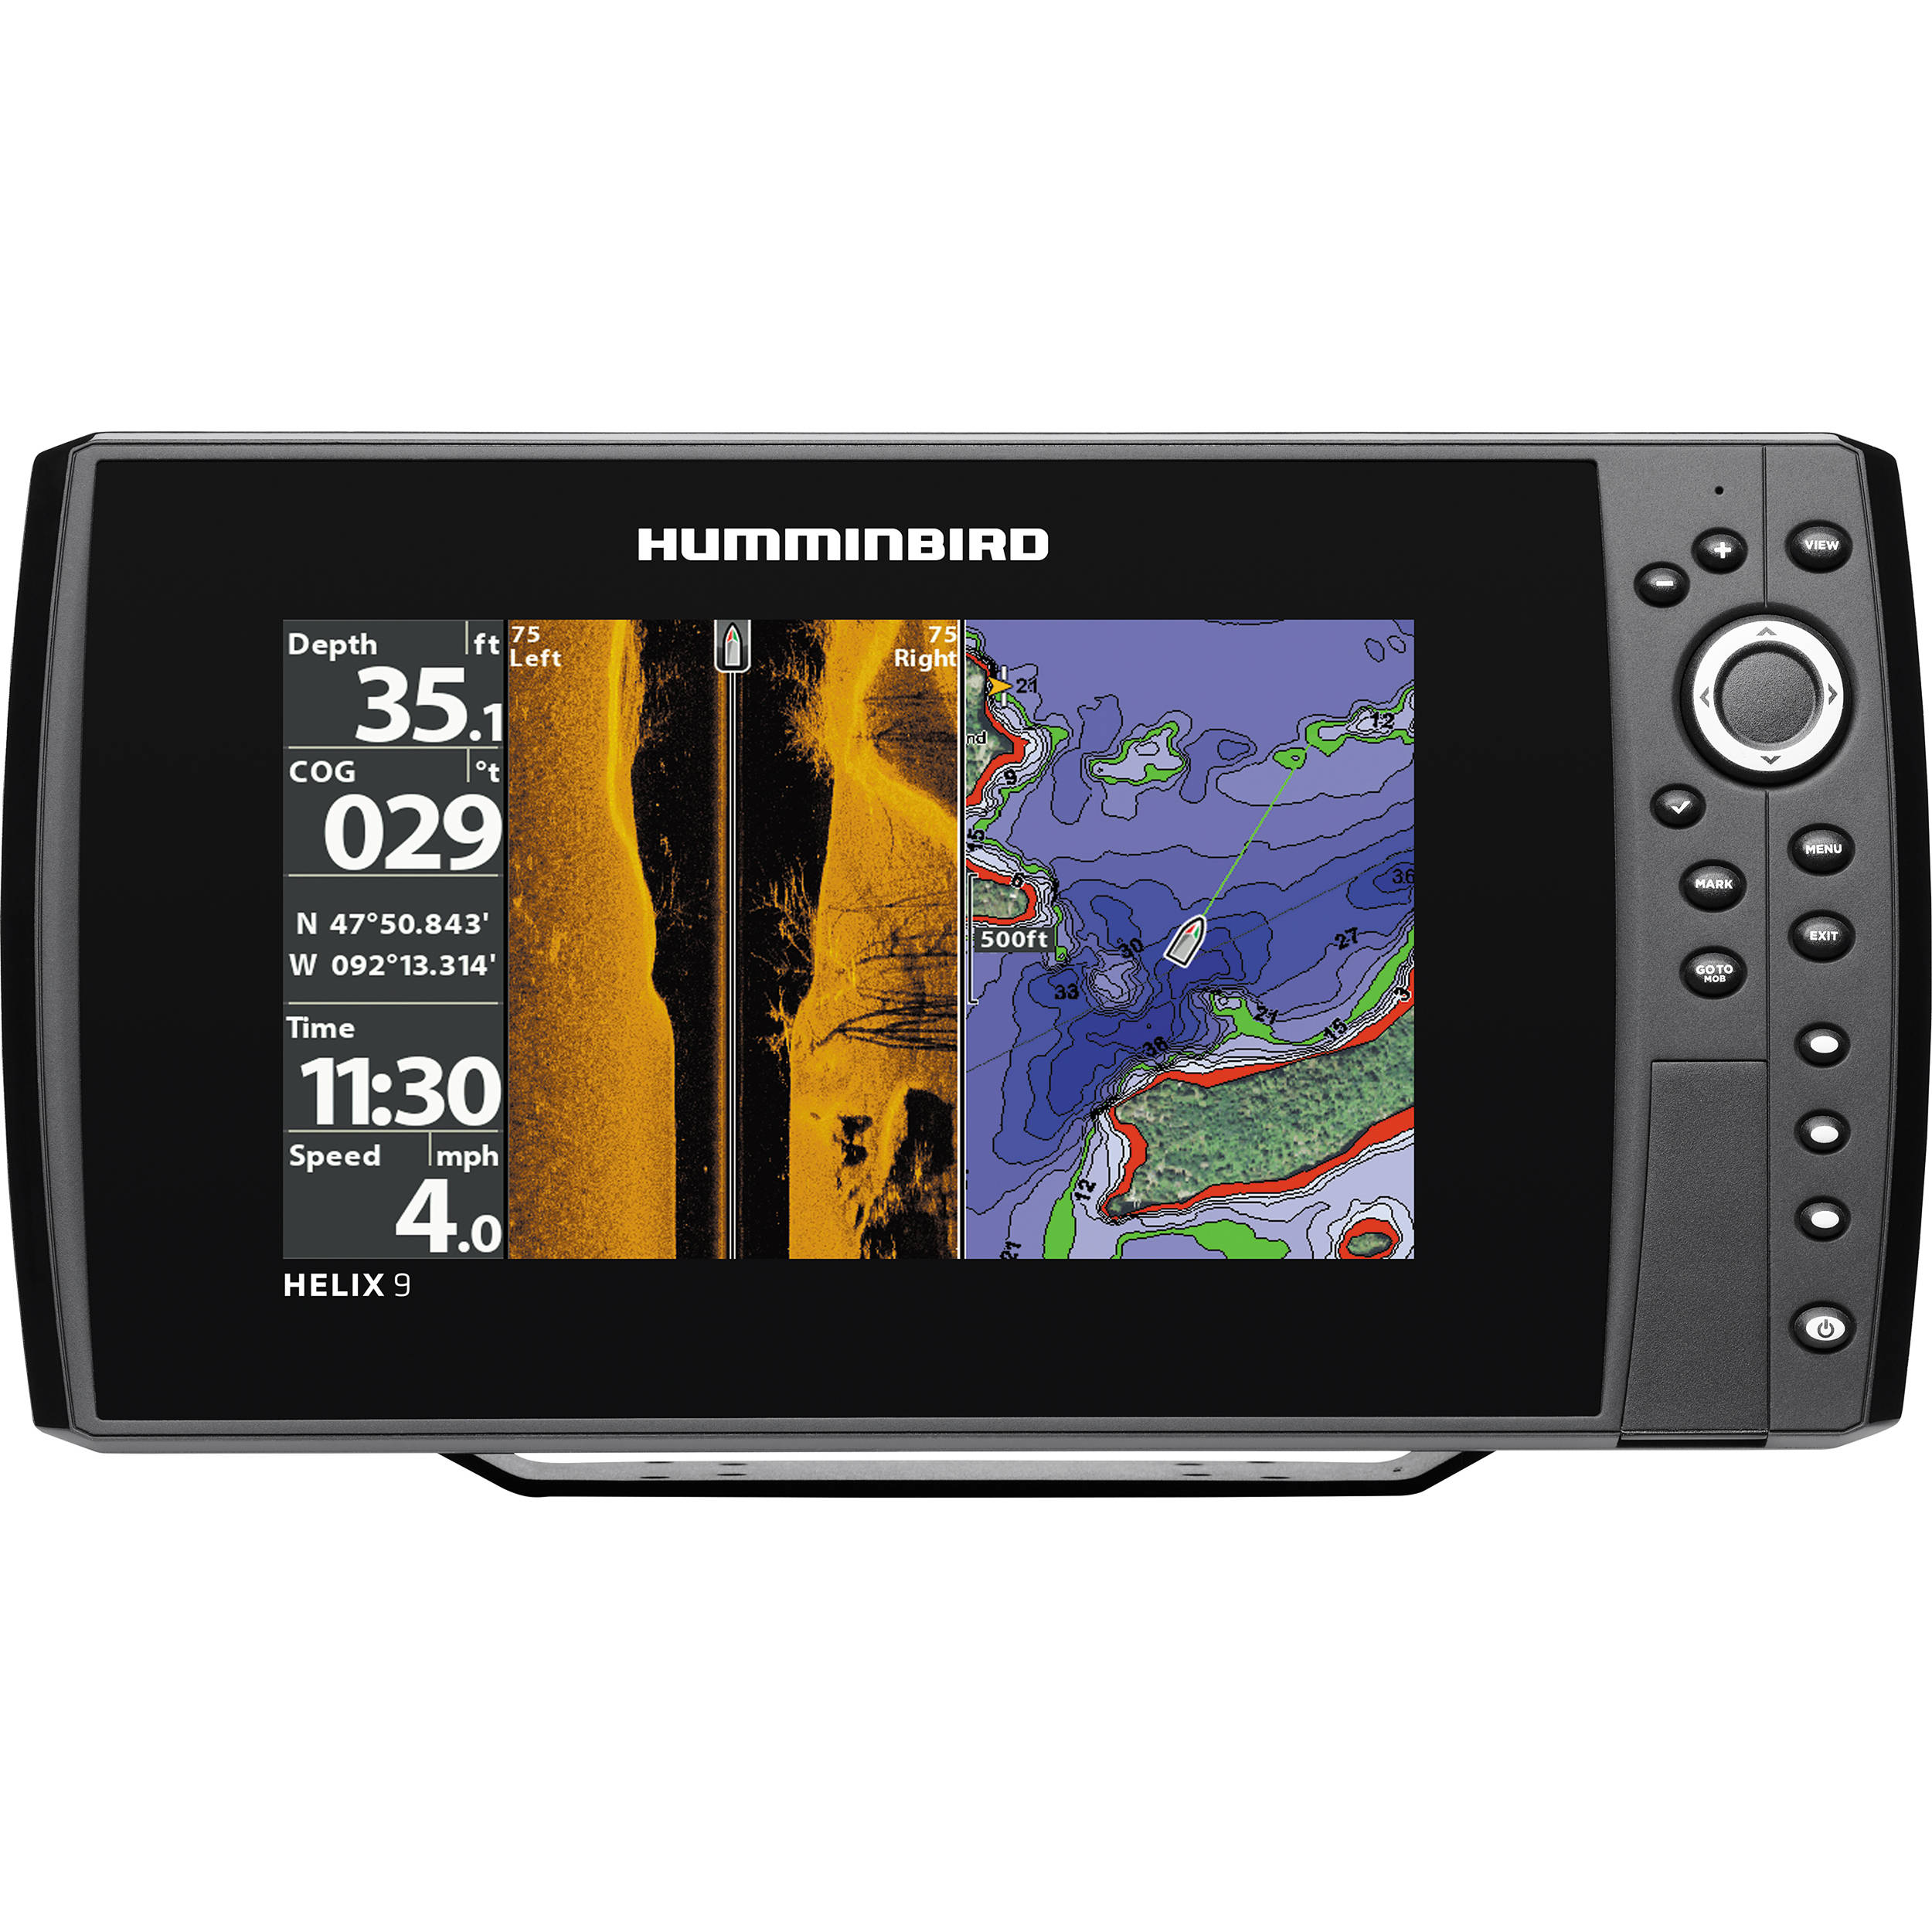 humminbird helix 9 si gps fishfinder 409950-1 b&h photo video, Fish Finder